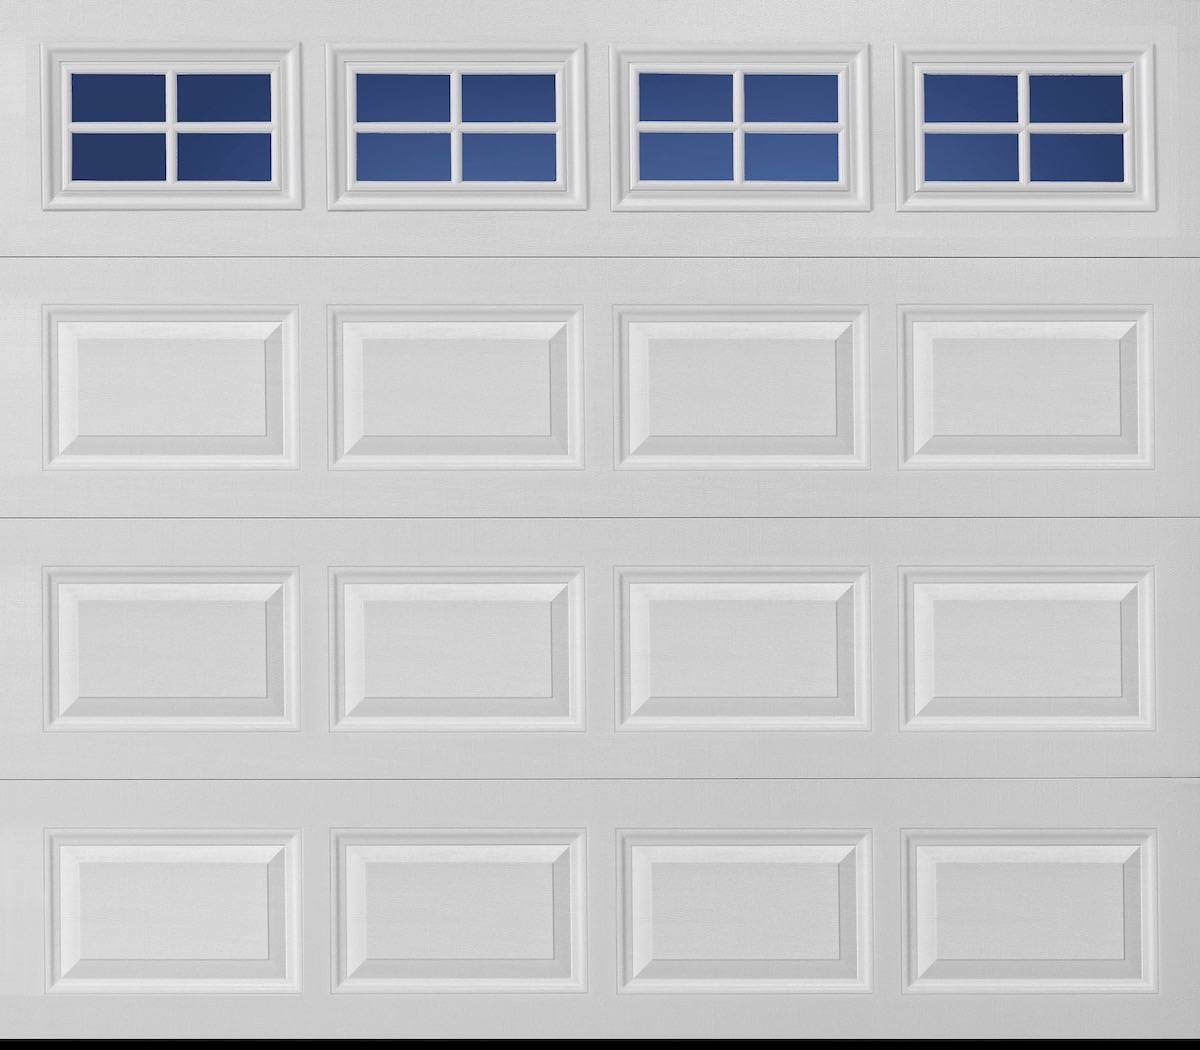 Lincoln Collection - The Amarr Lincoln Collection offers four traditional designs in 7 colors and 3 woodgrain choices.8x7 starting at $630.7616x7 starting at $922.67